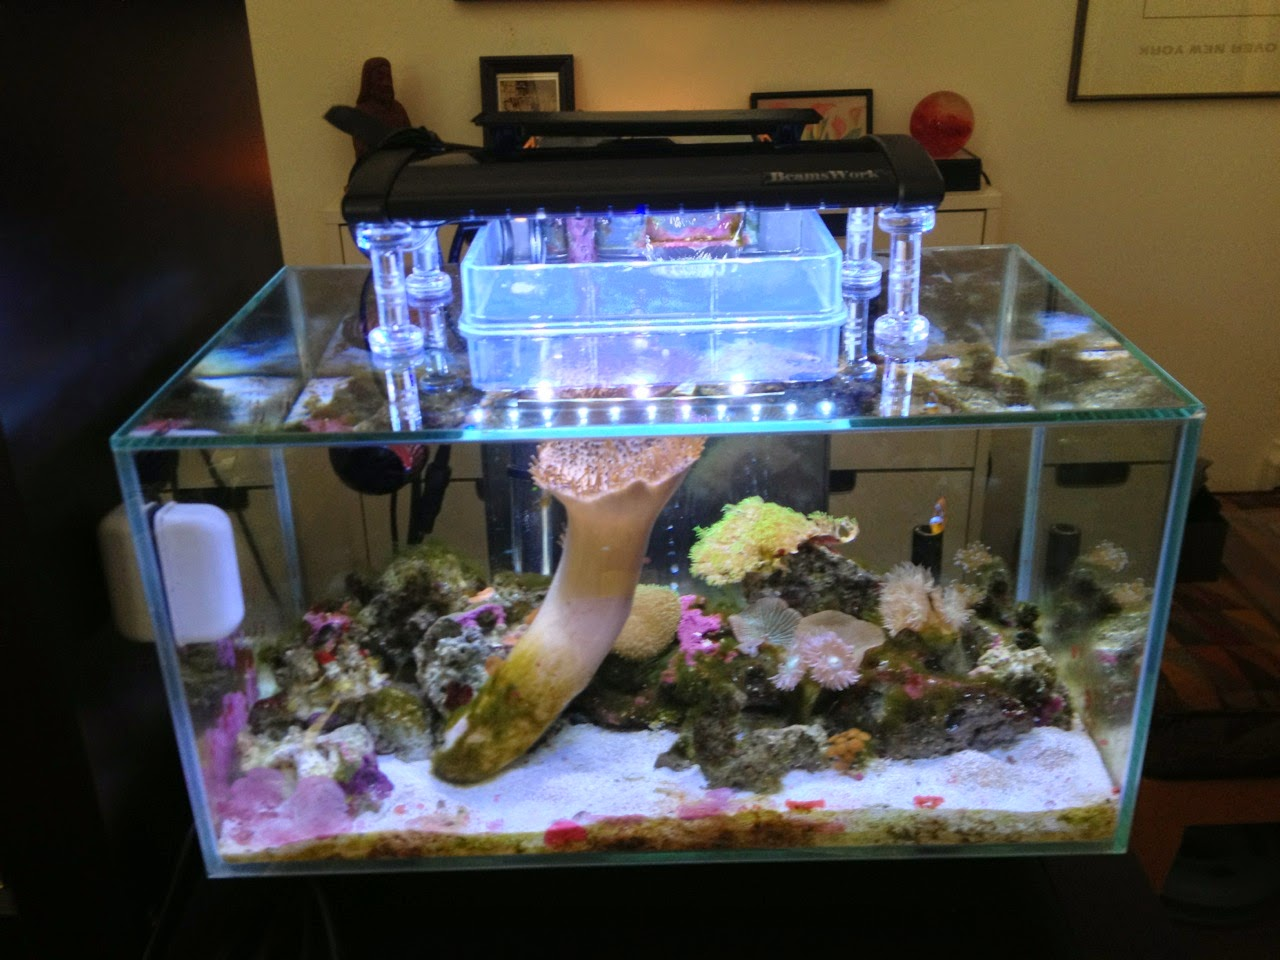 ikeahackers.net & Guppy-Guide: Aquarium Light Stand - DIY